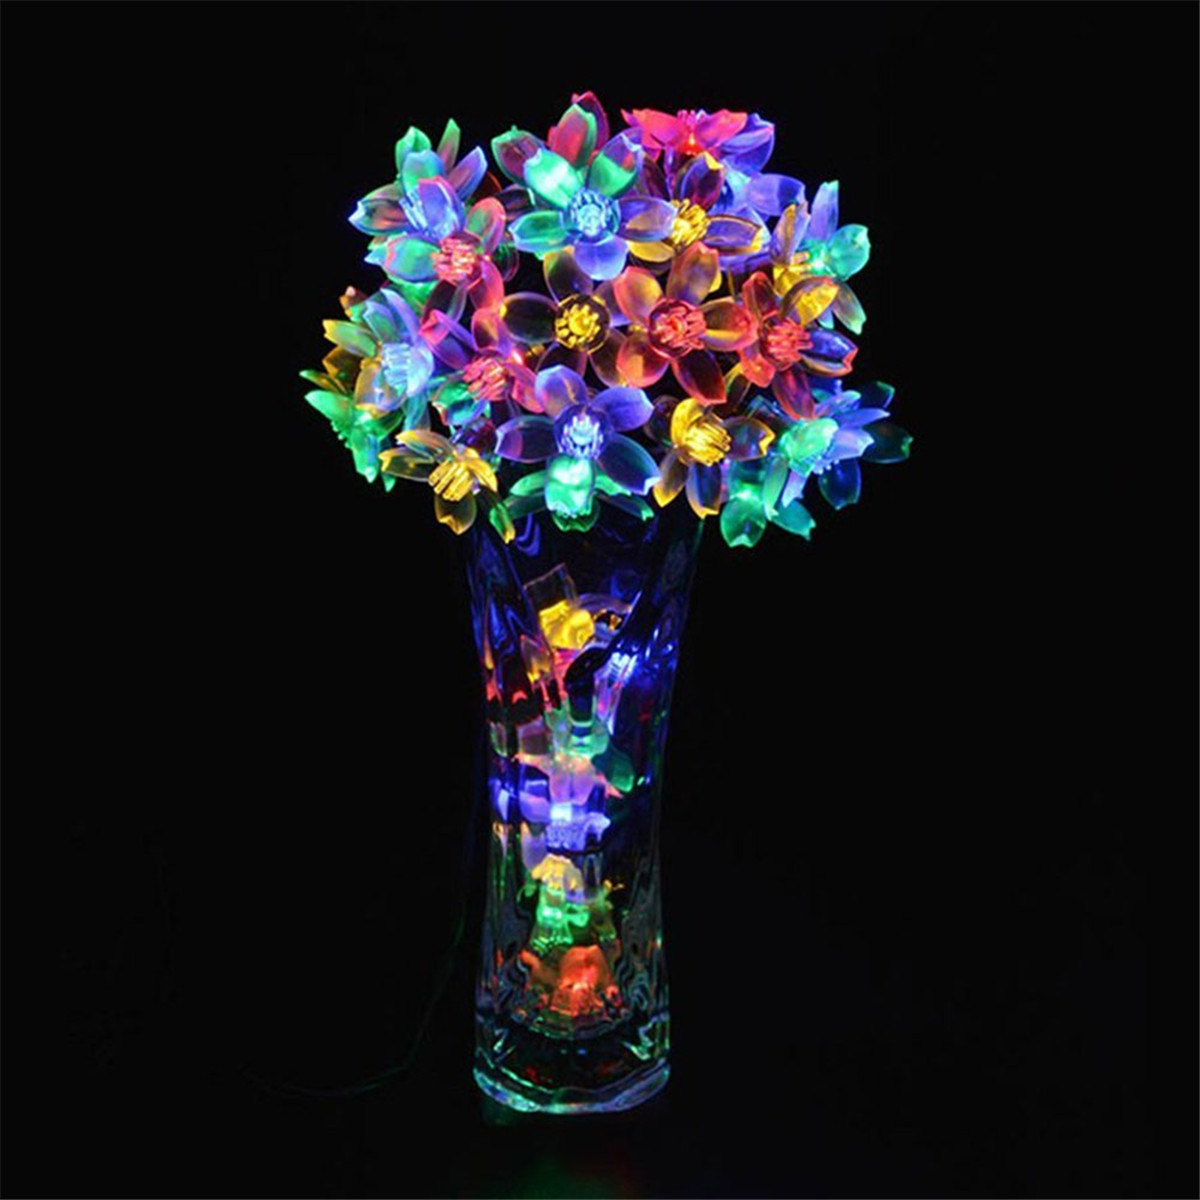 Solar Blossom Flower Fairy String Light 23FT 50LED Home Garden Wedding Decor